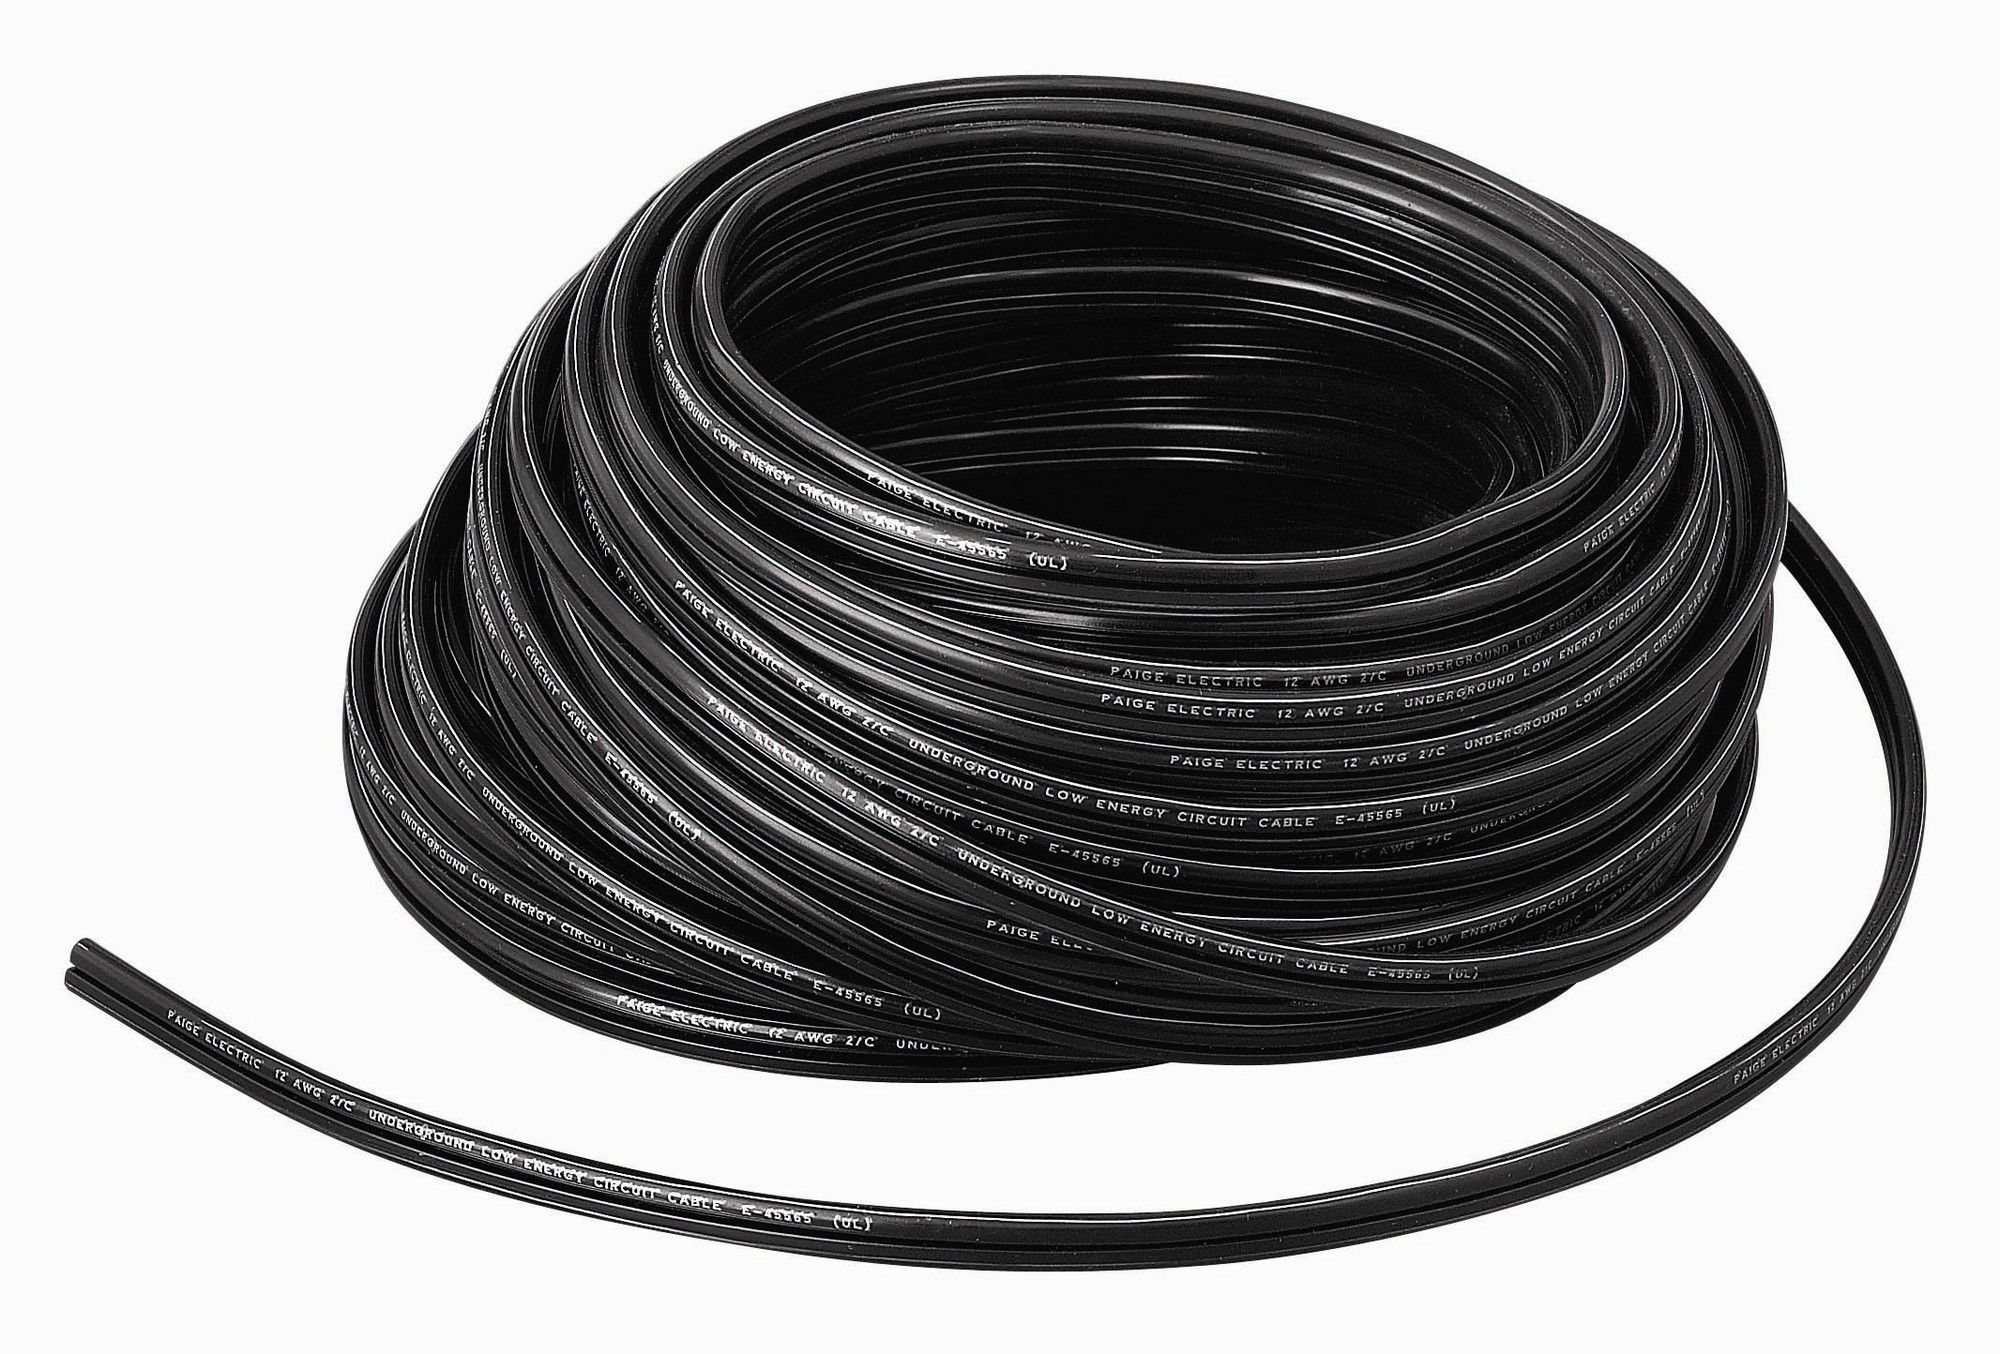 small resolution of wire 12 gauge 100 feet wire spool electrical supplies outdoor lighting landscape lighting